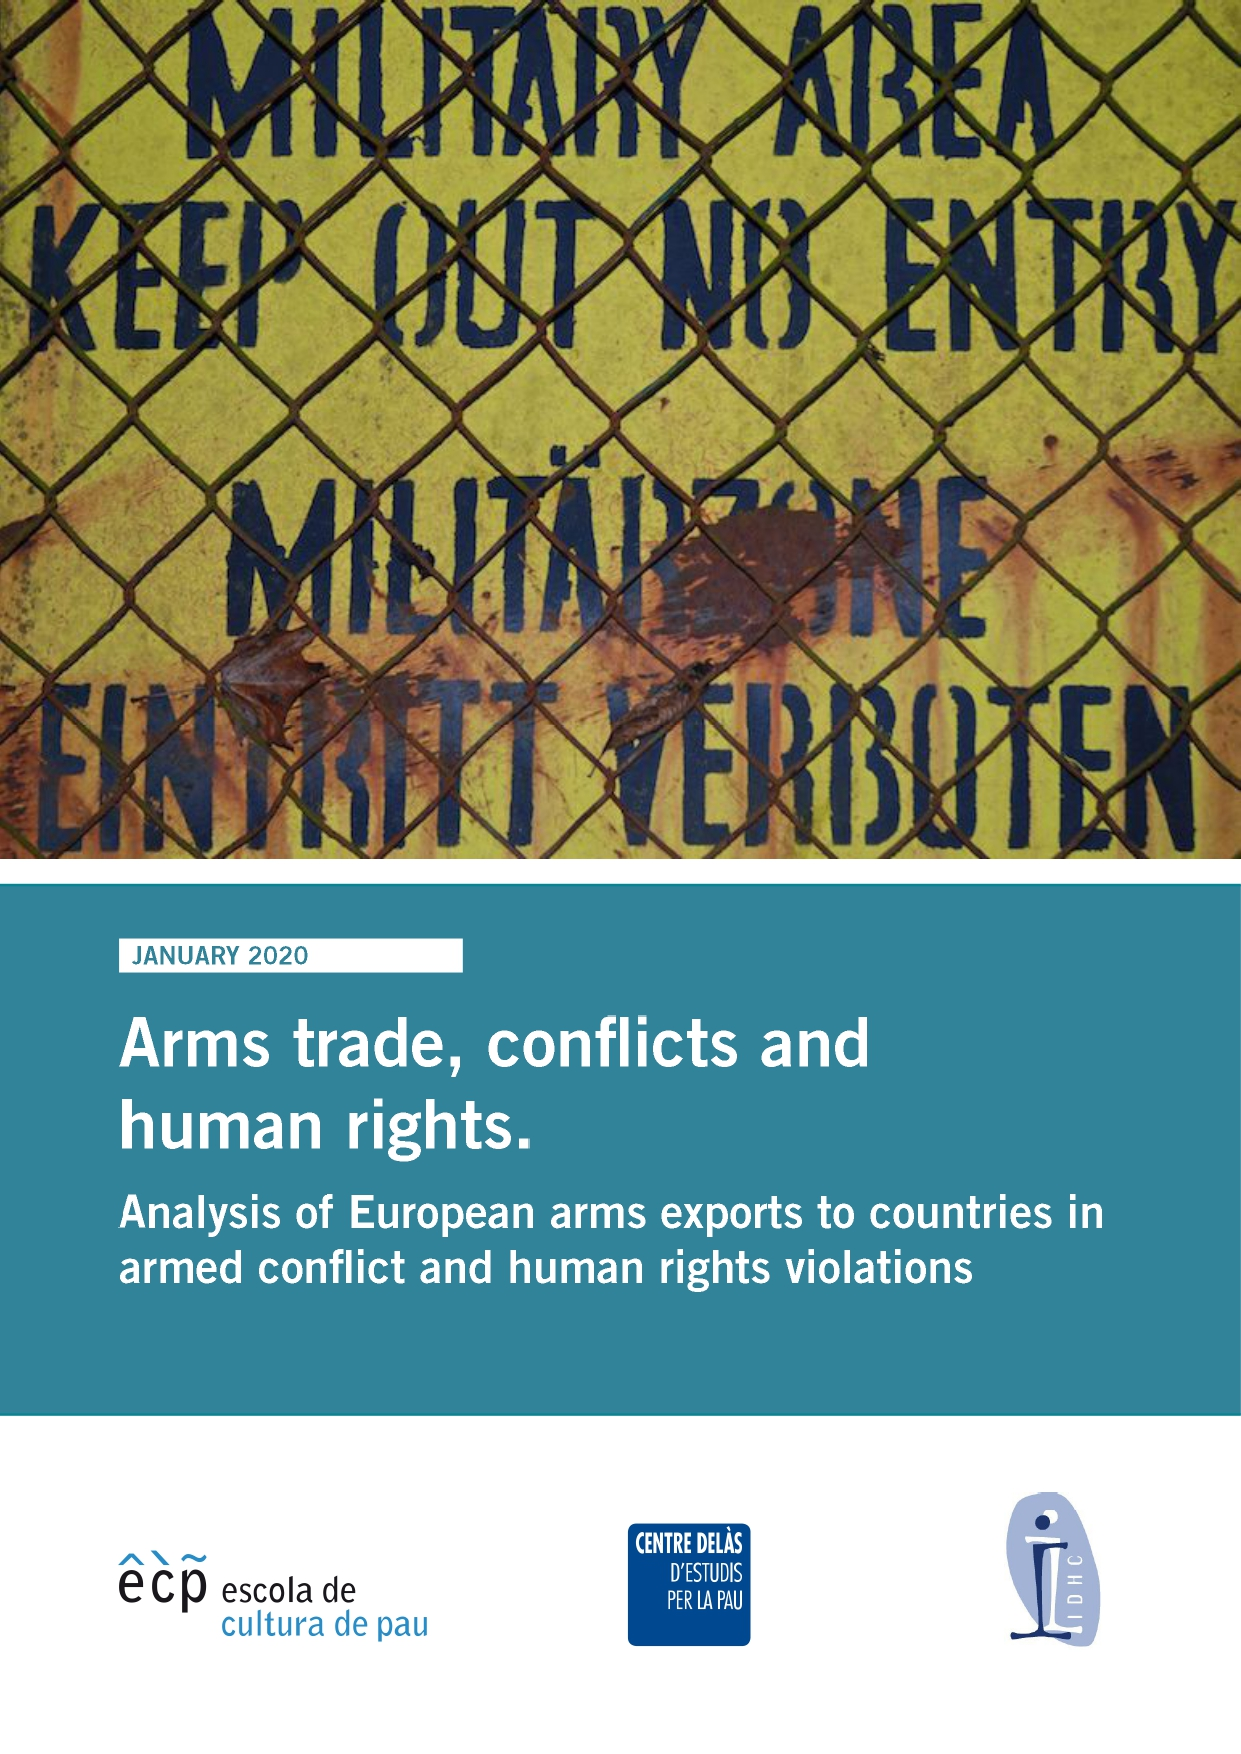 Report of Delàs Center, ECP and IDHC: Arms trade, conflicts and human rights. Analysis of European arms exports to countries in armed conflict and human rights violations